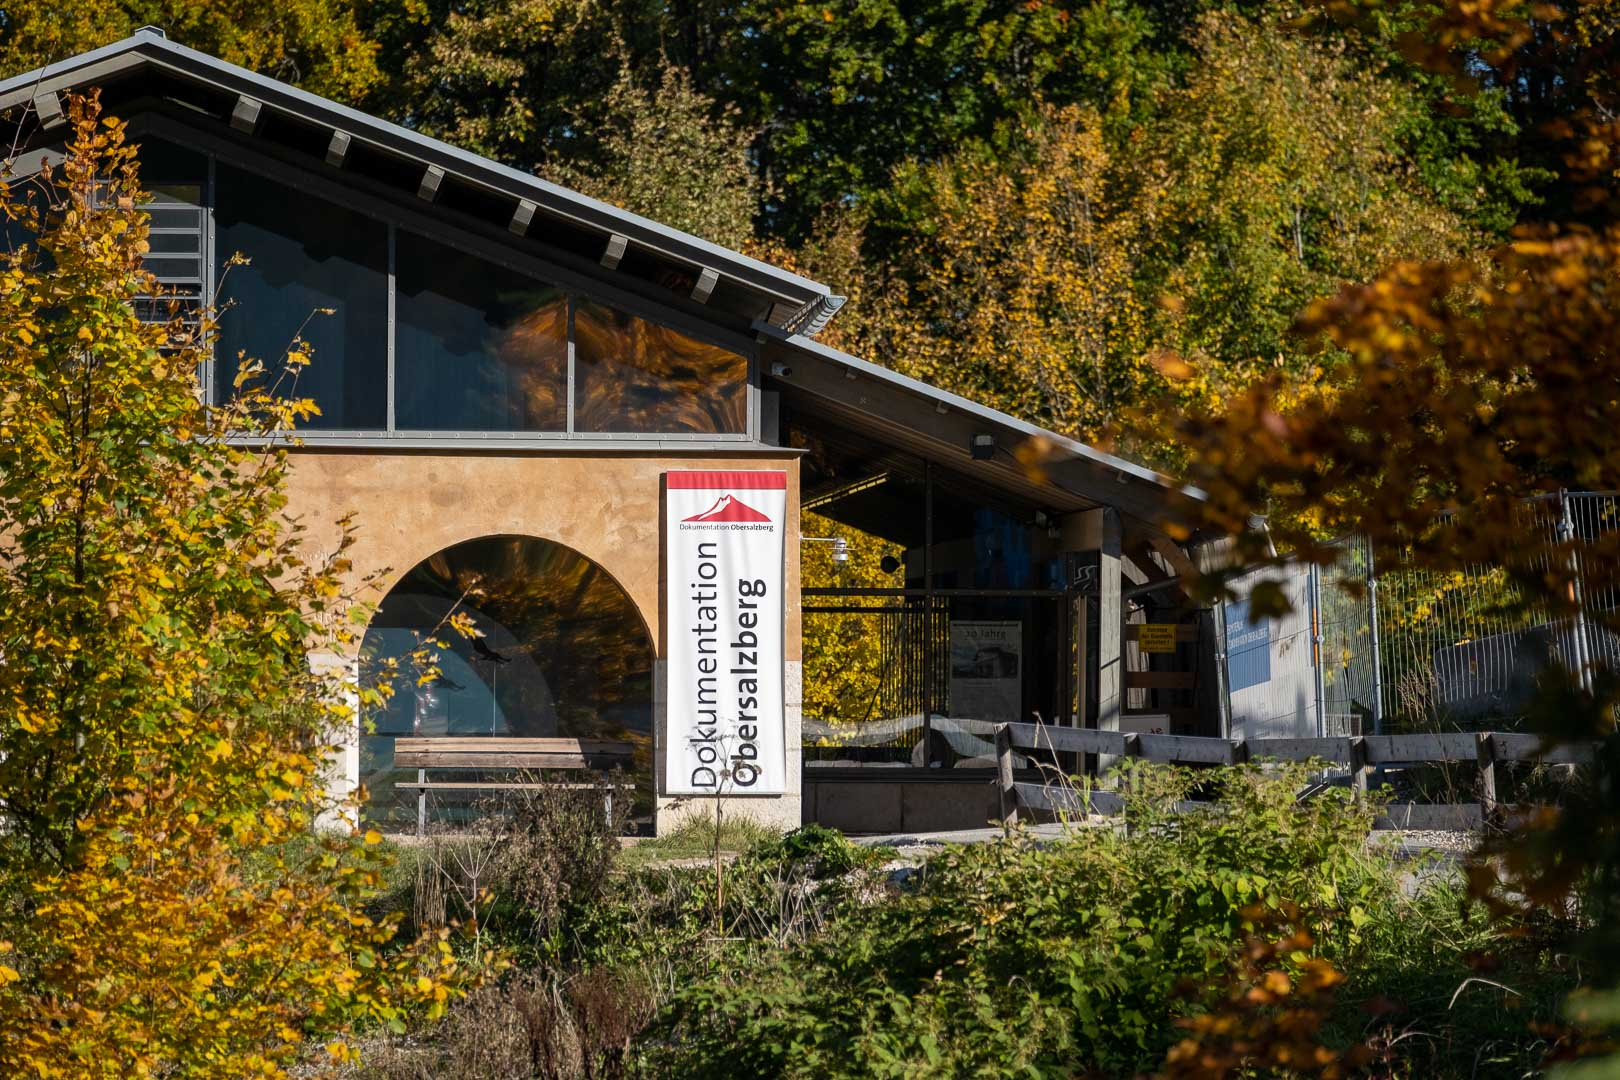 The documentation center at Obersalzburg